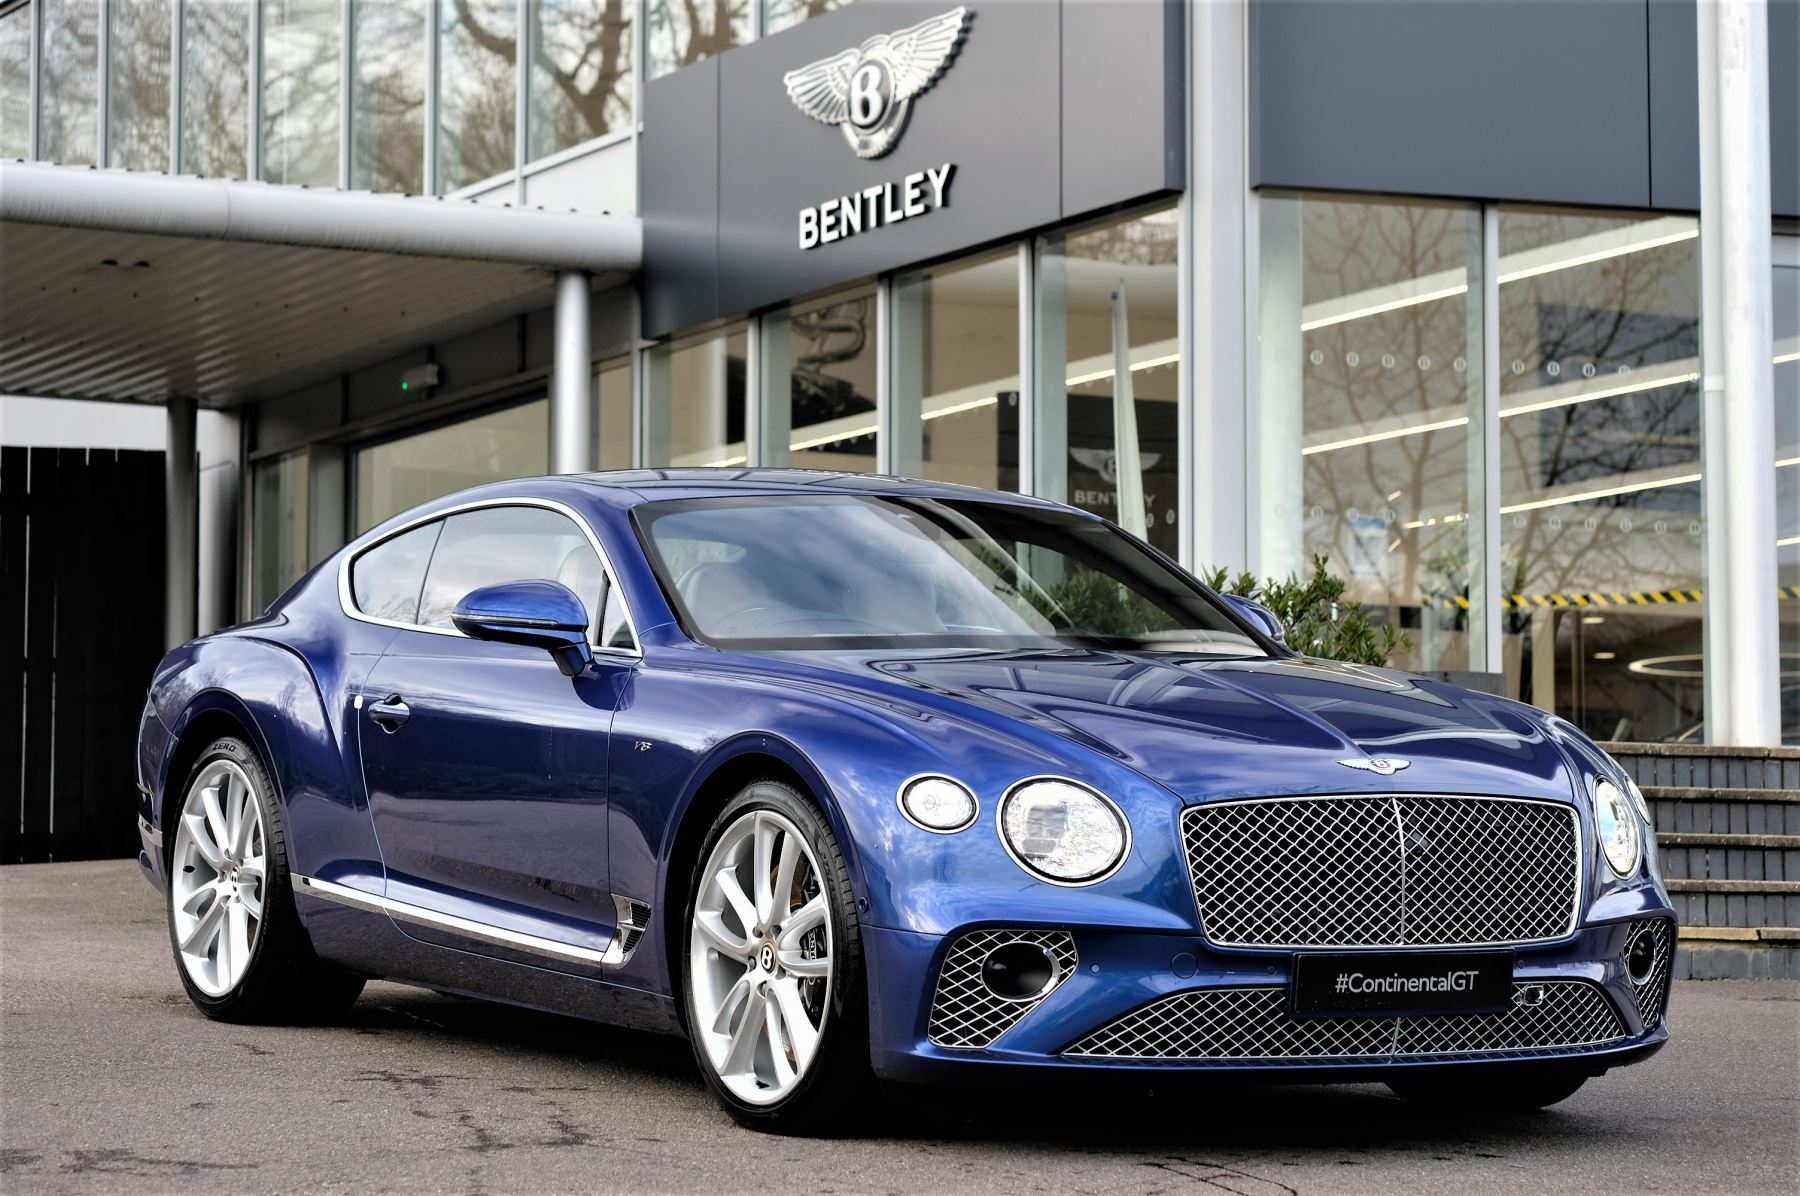 Bentley Continental GT 0.0 4.0 V8 Mulliner Driving Spec 2dr Auto - Centenary